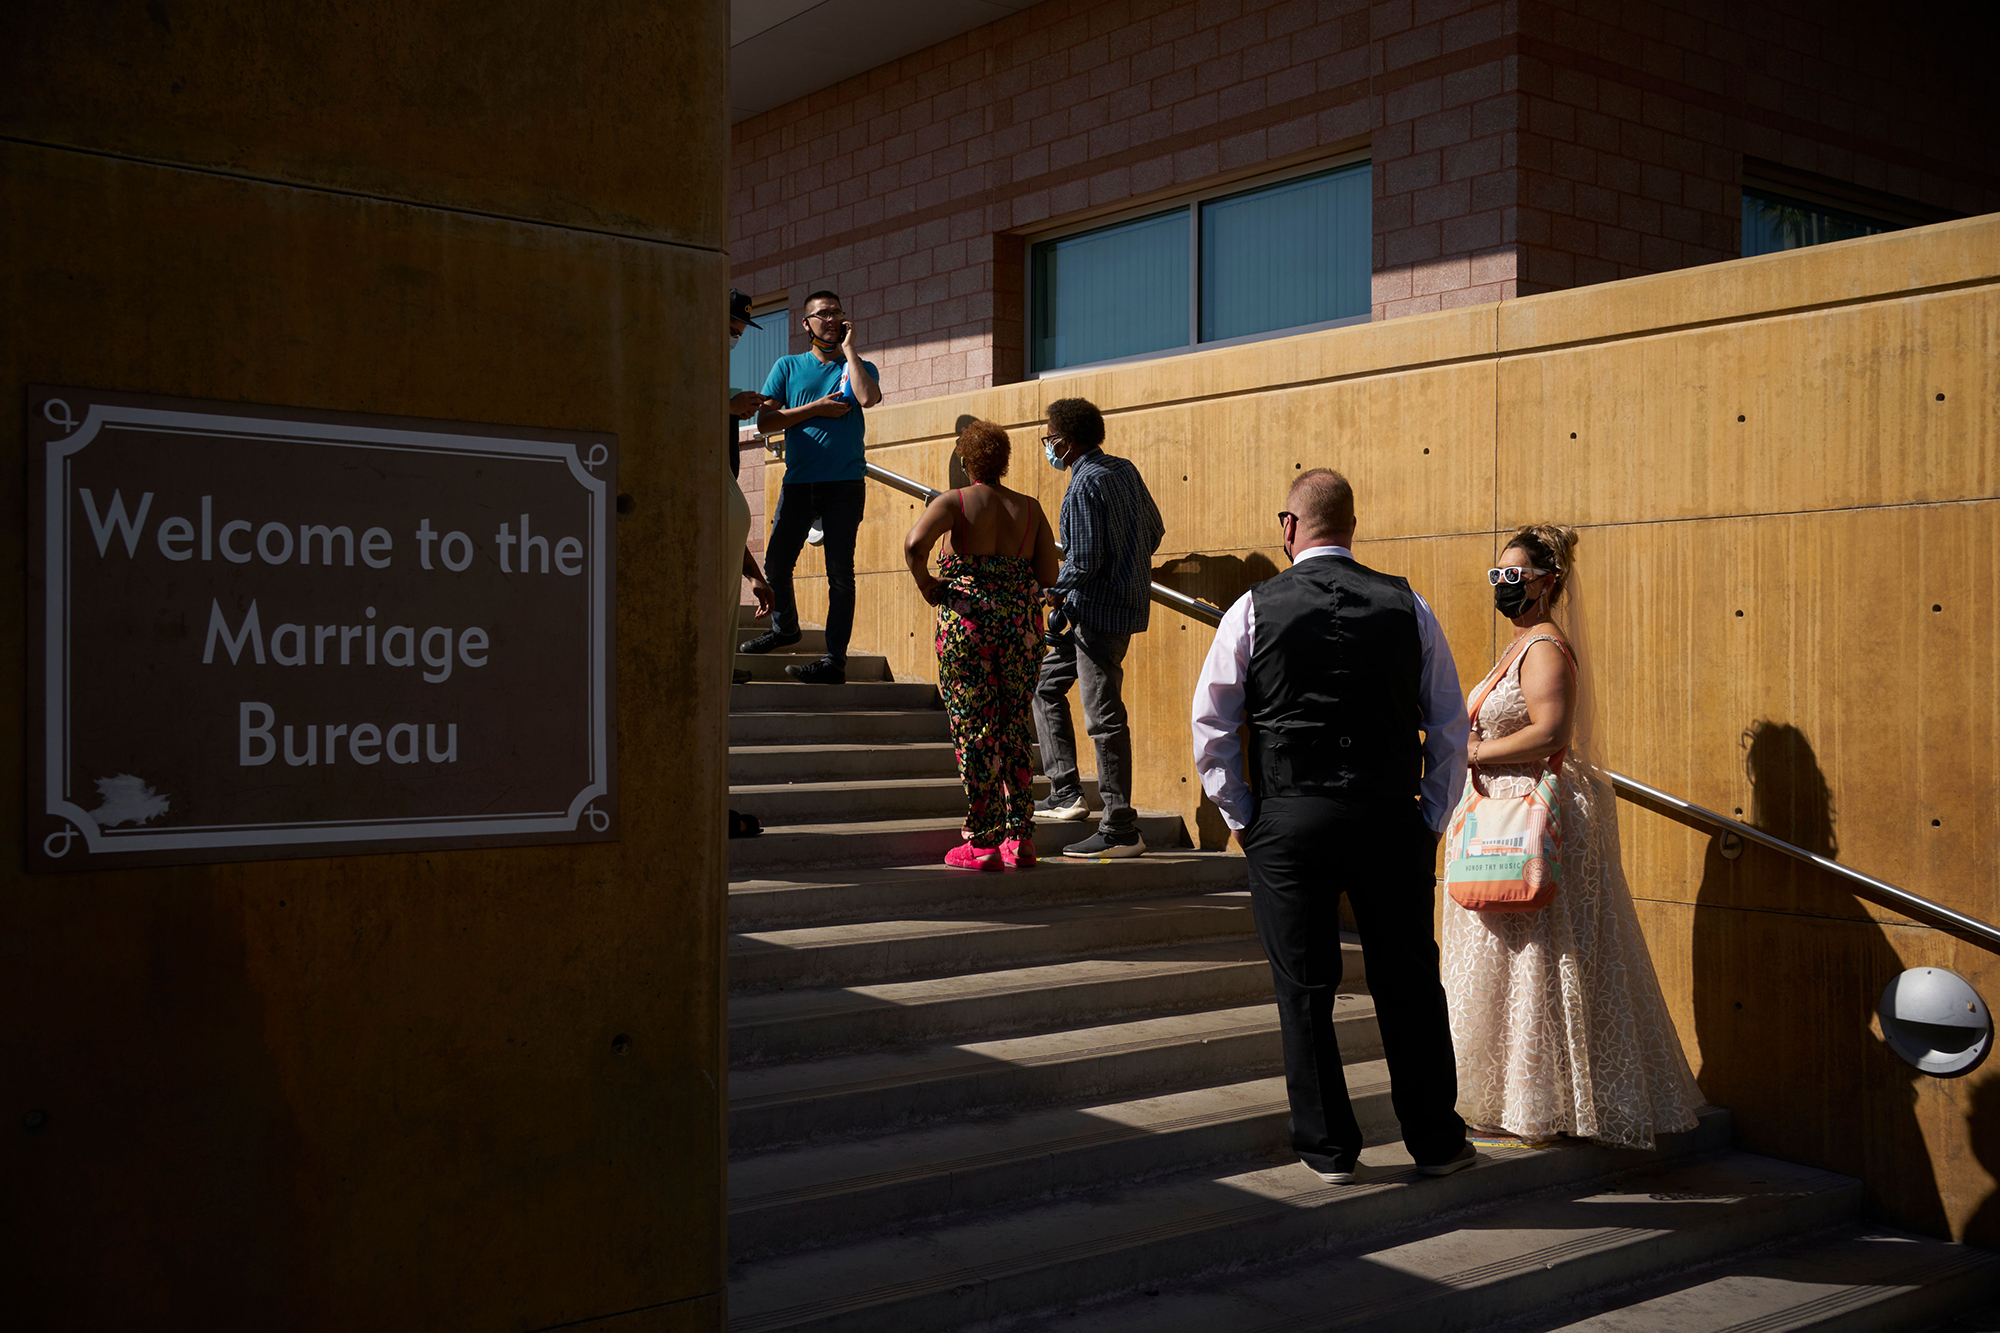 Hundreds of Couples Line Up for Marriage Licenses at Las Vegas Bureau for 4/3/21 Wedding Date